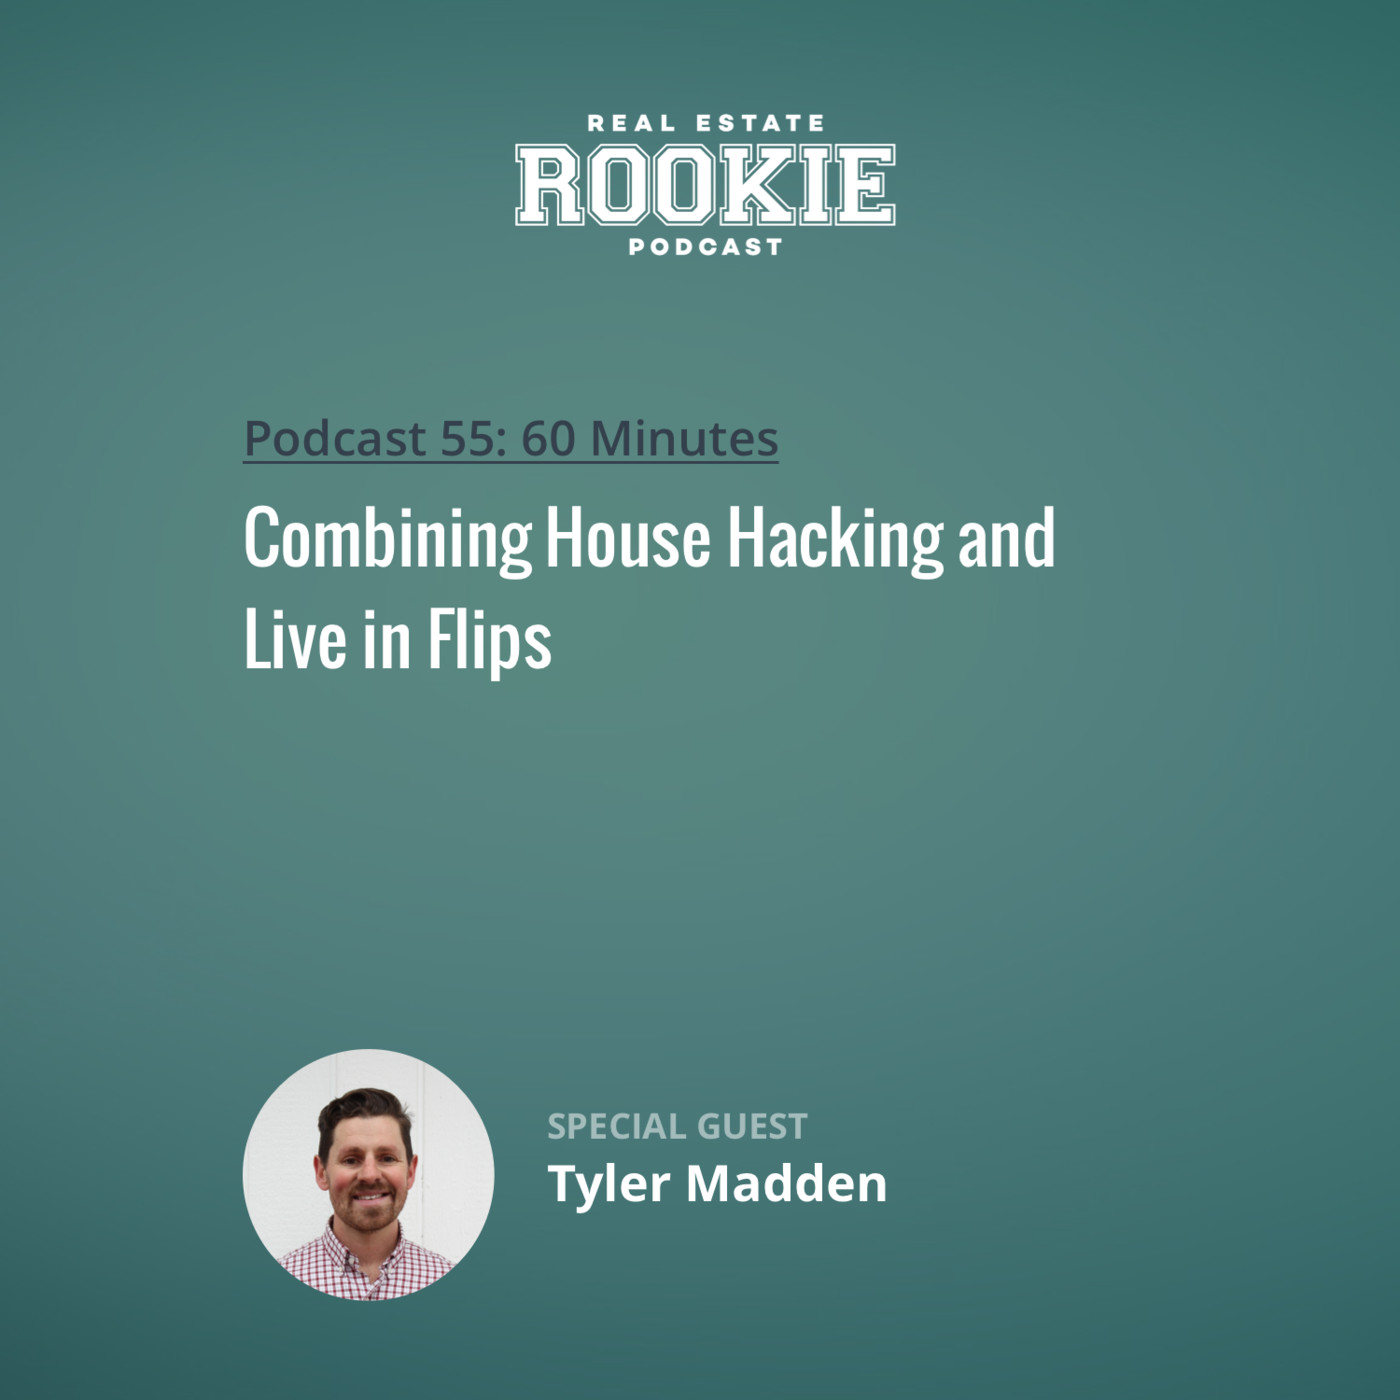 Combining House Hacking and Live in Flips with Tyler Madden